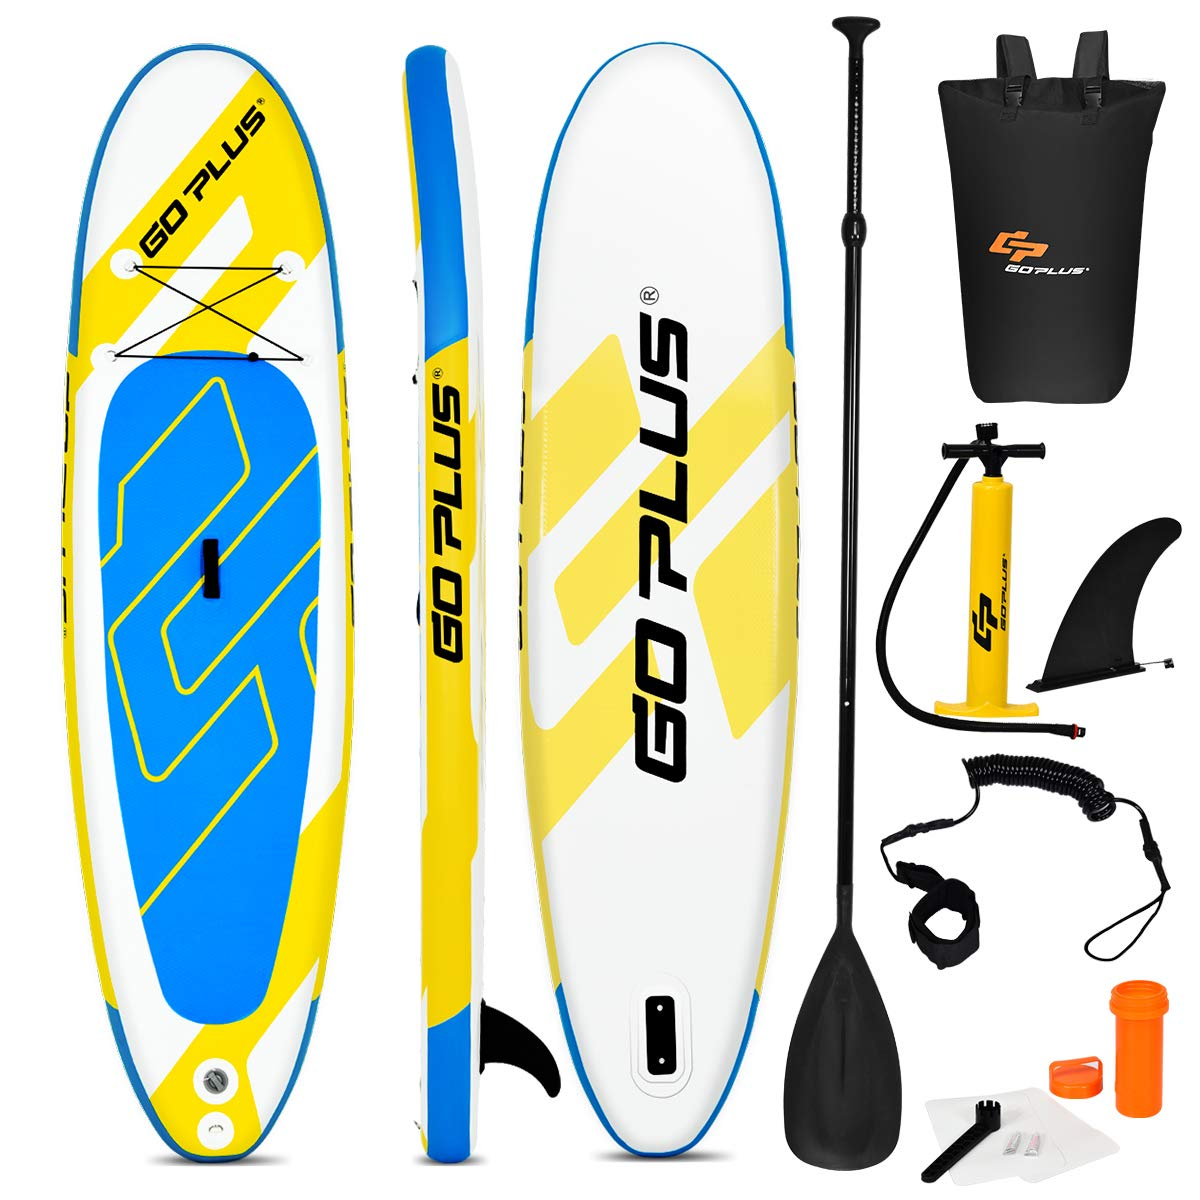 Goplus Inflatable Stand Up Paddle Board, 6'' Thick SUP with Accessory Pack, Adjustable Paddle, Carry Bag, Bottom Fin, Hand Pump, Non-Slip Deck, Leash, Repair Kit (Yellow+Blue, 11FT) by Goplus